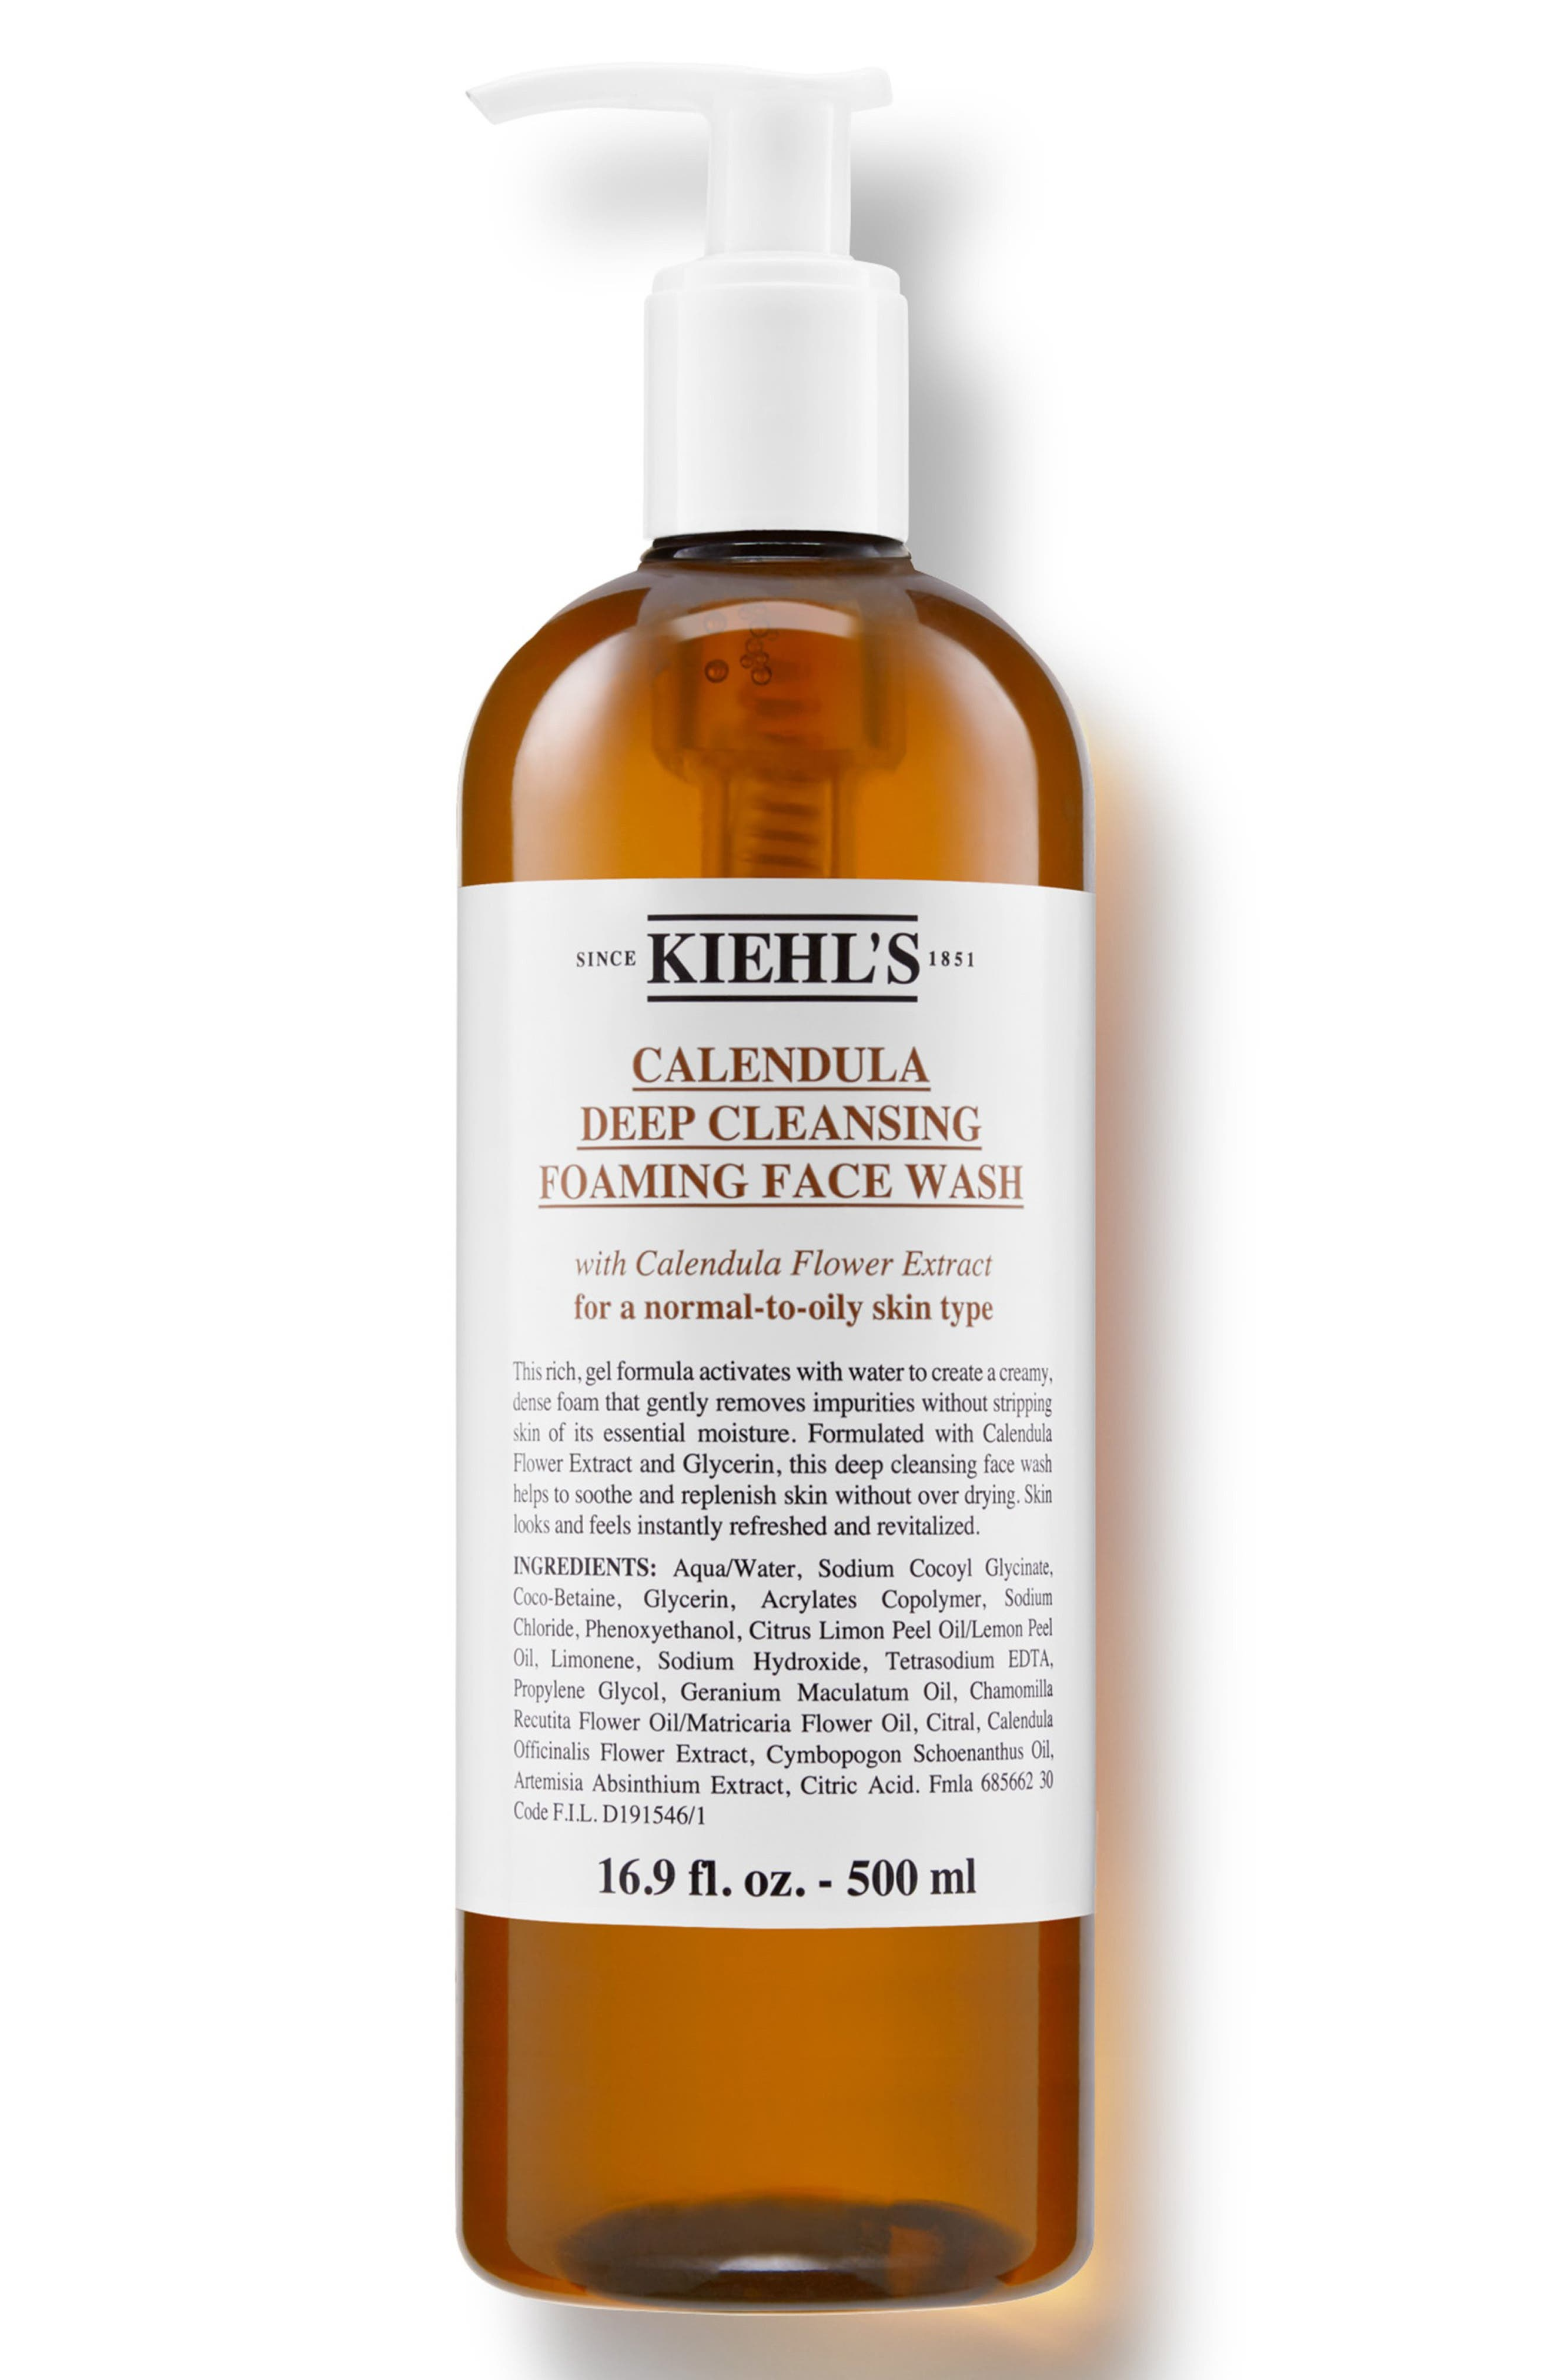 1851 Calendula Deep Cleansing Foaming Face Wash For Normal-To-Oily Skin